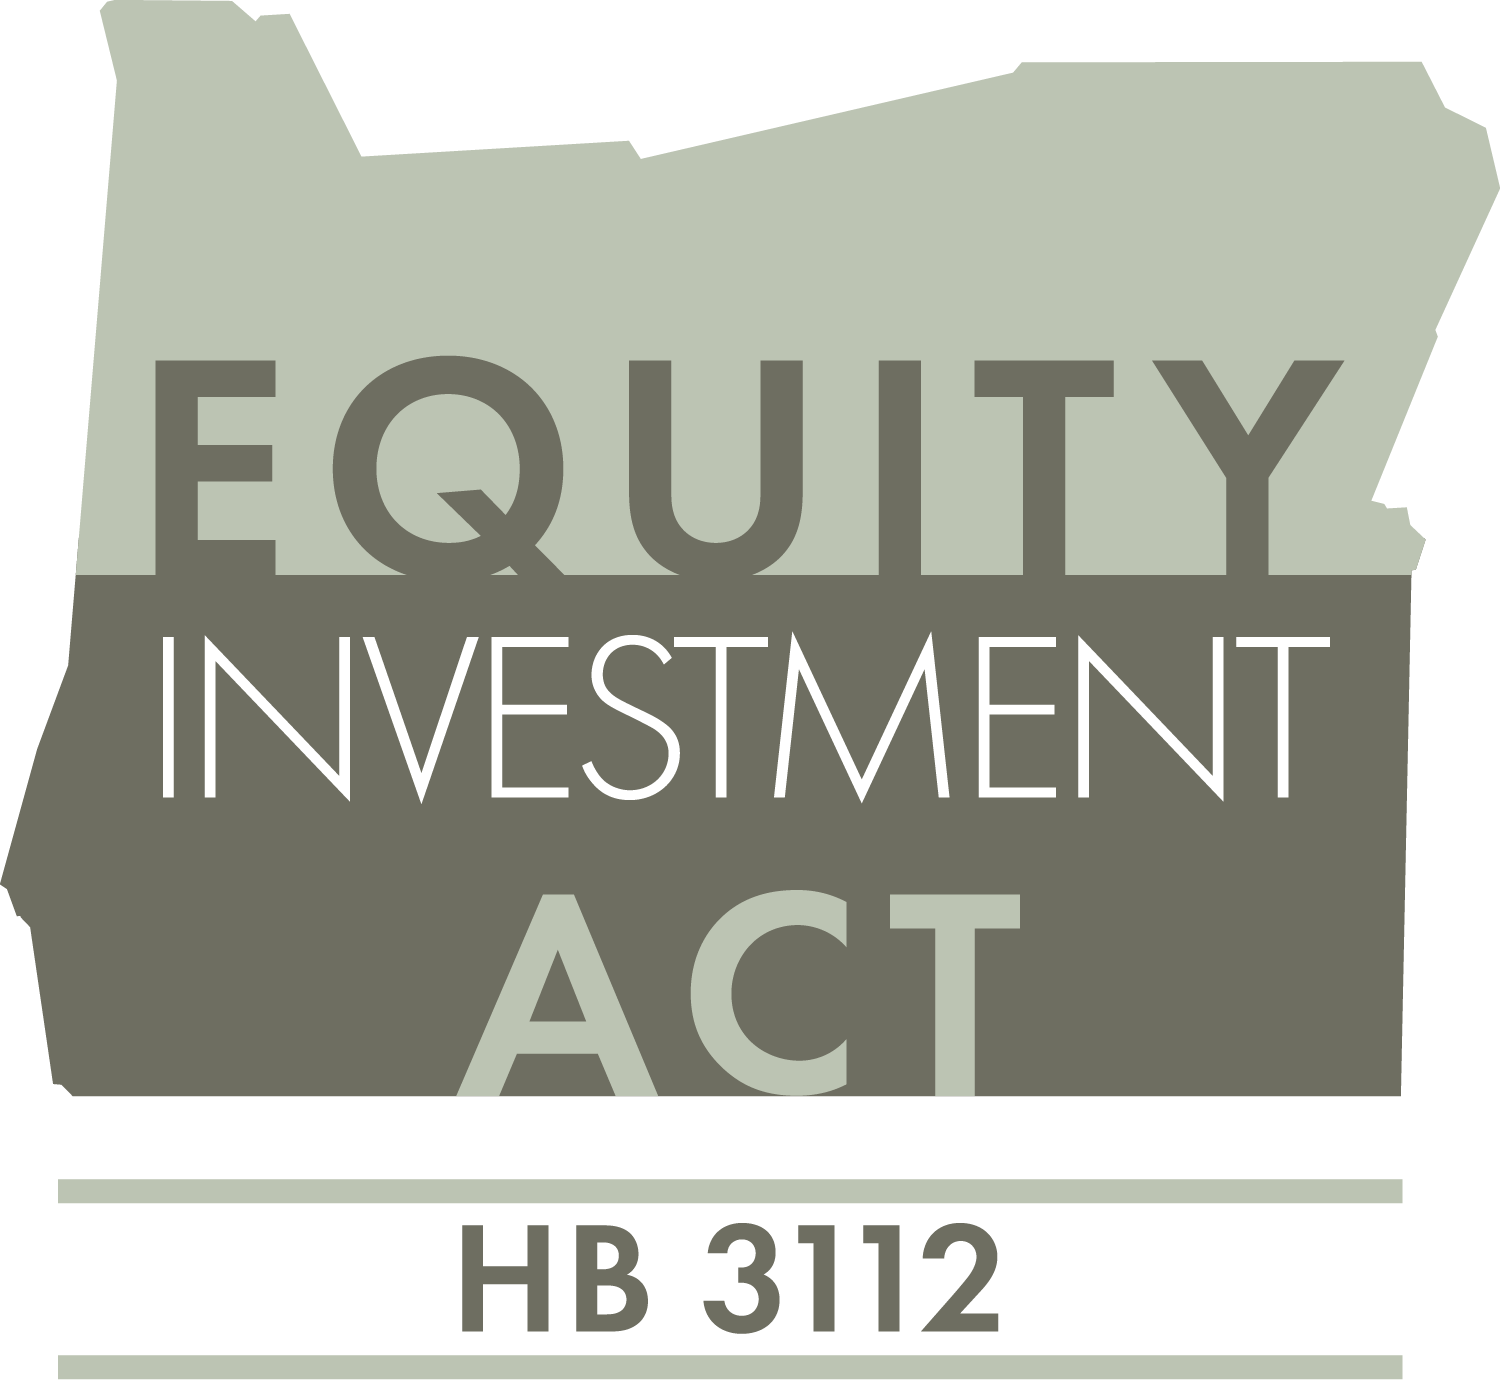 Equity Investment Act Logo 3112